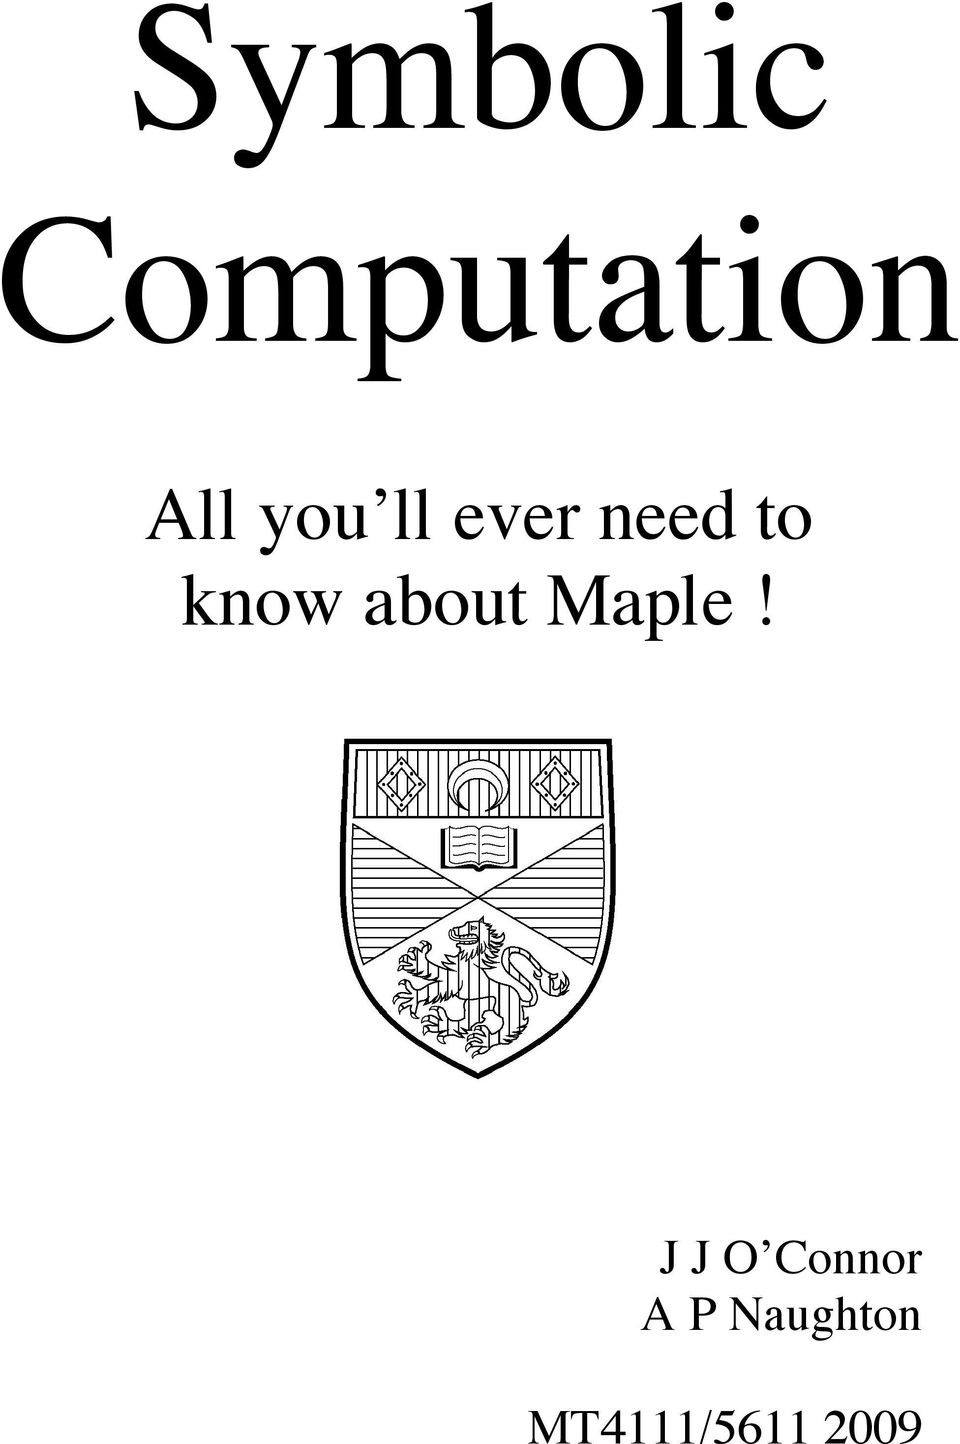 about Maple!